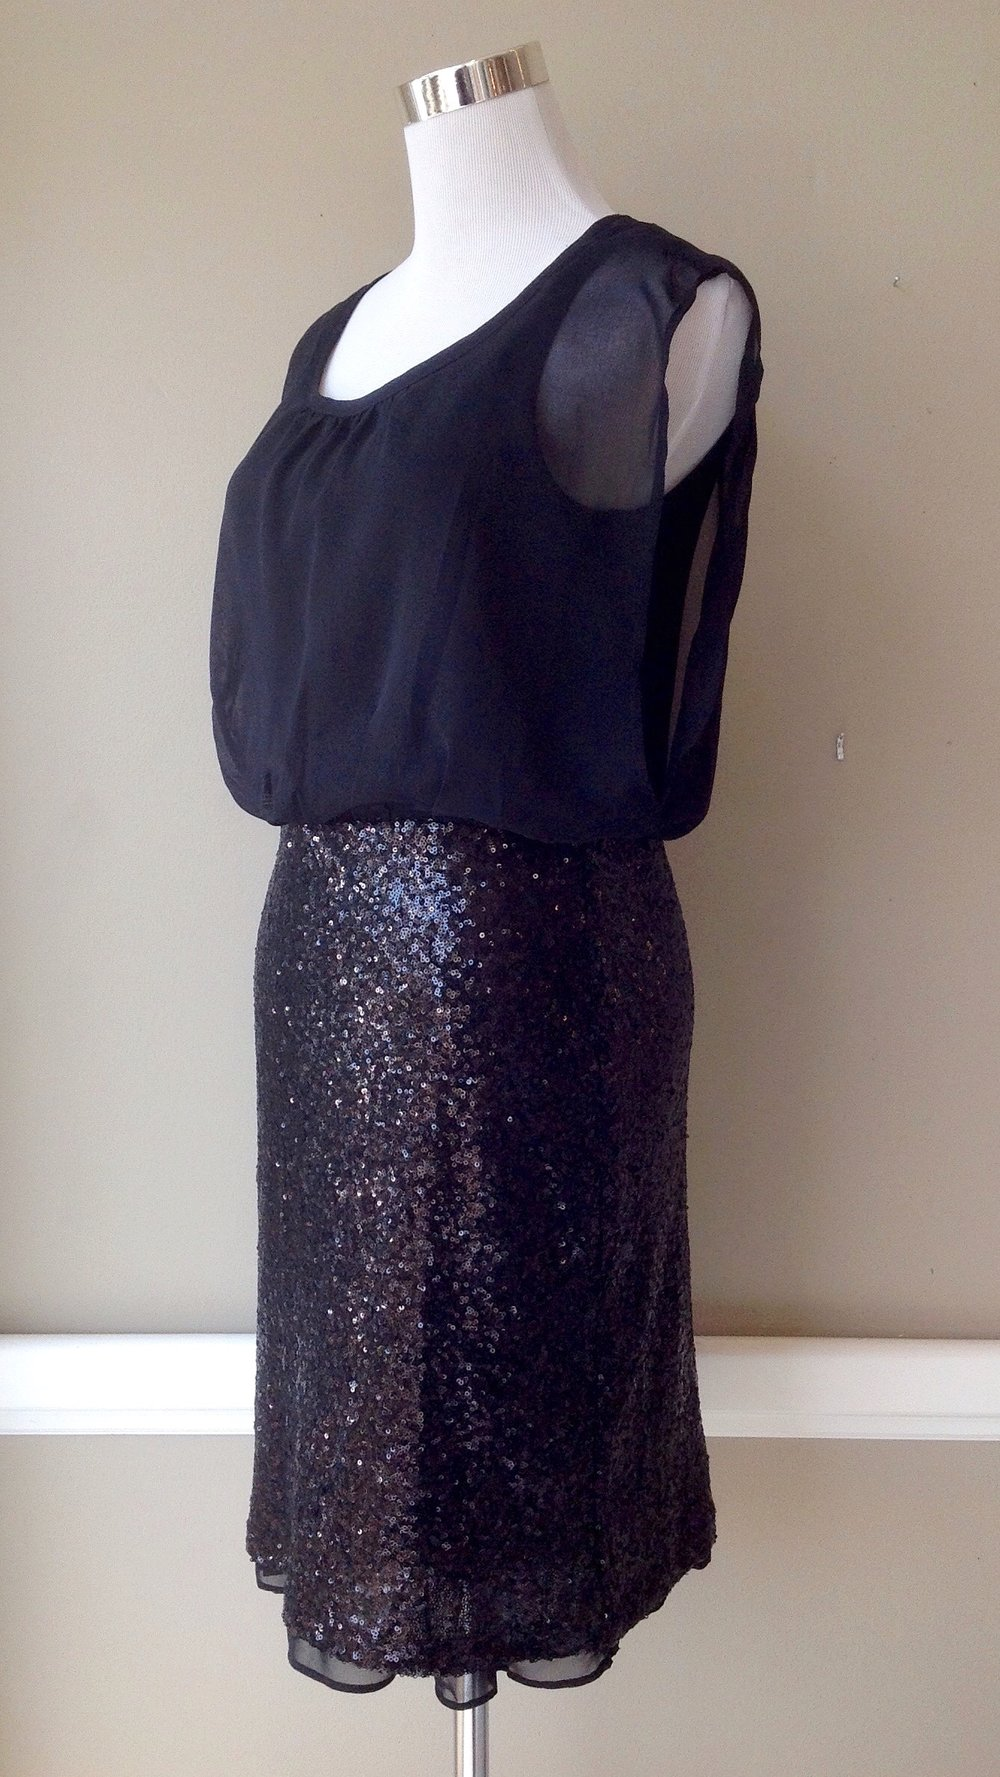 Layered chiffon dress with contrasting, fitted sequin skirt $62